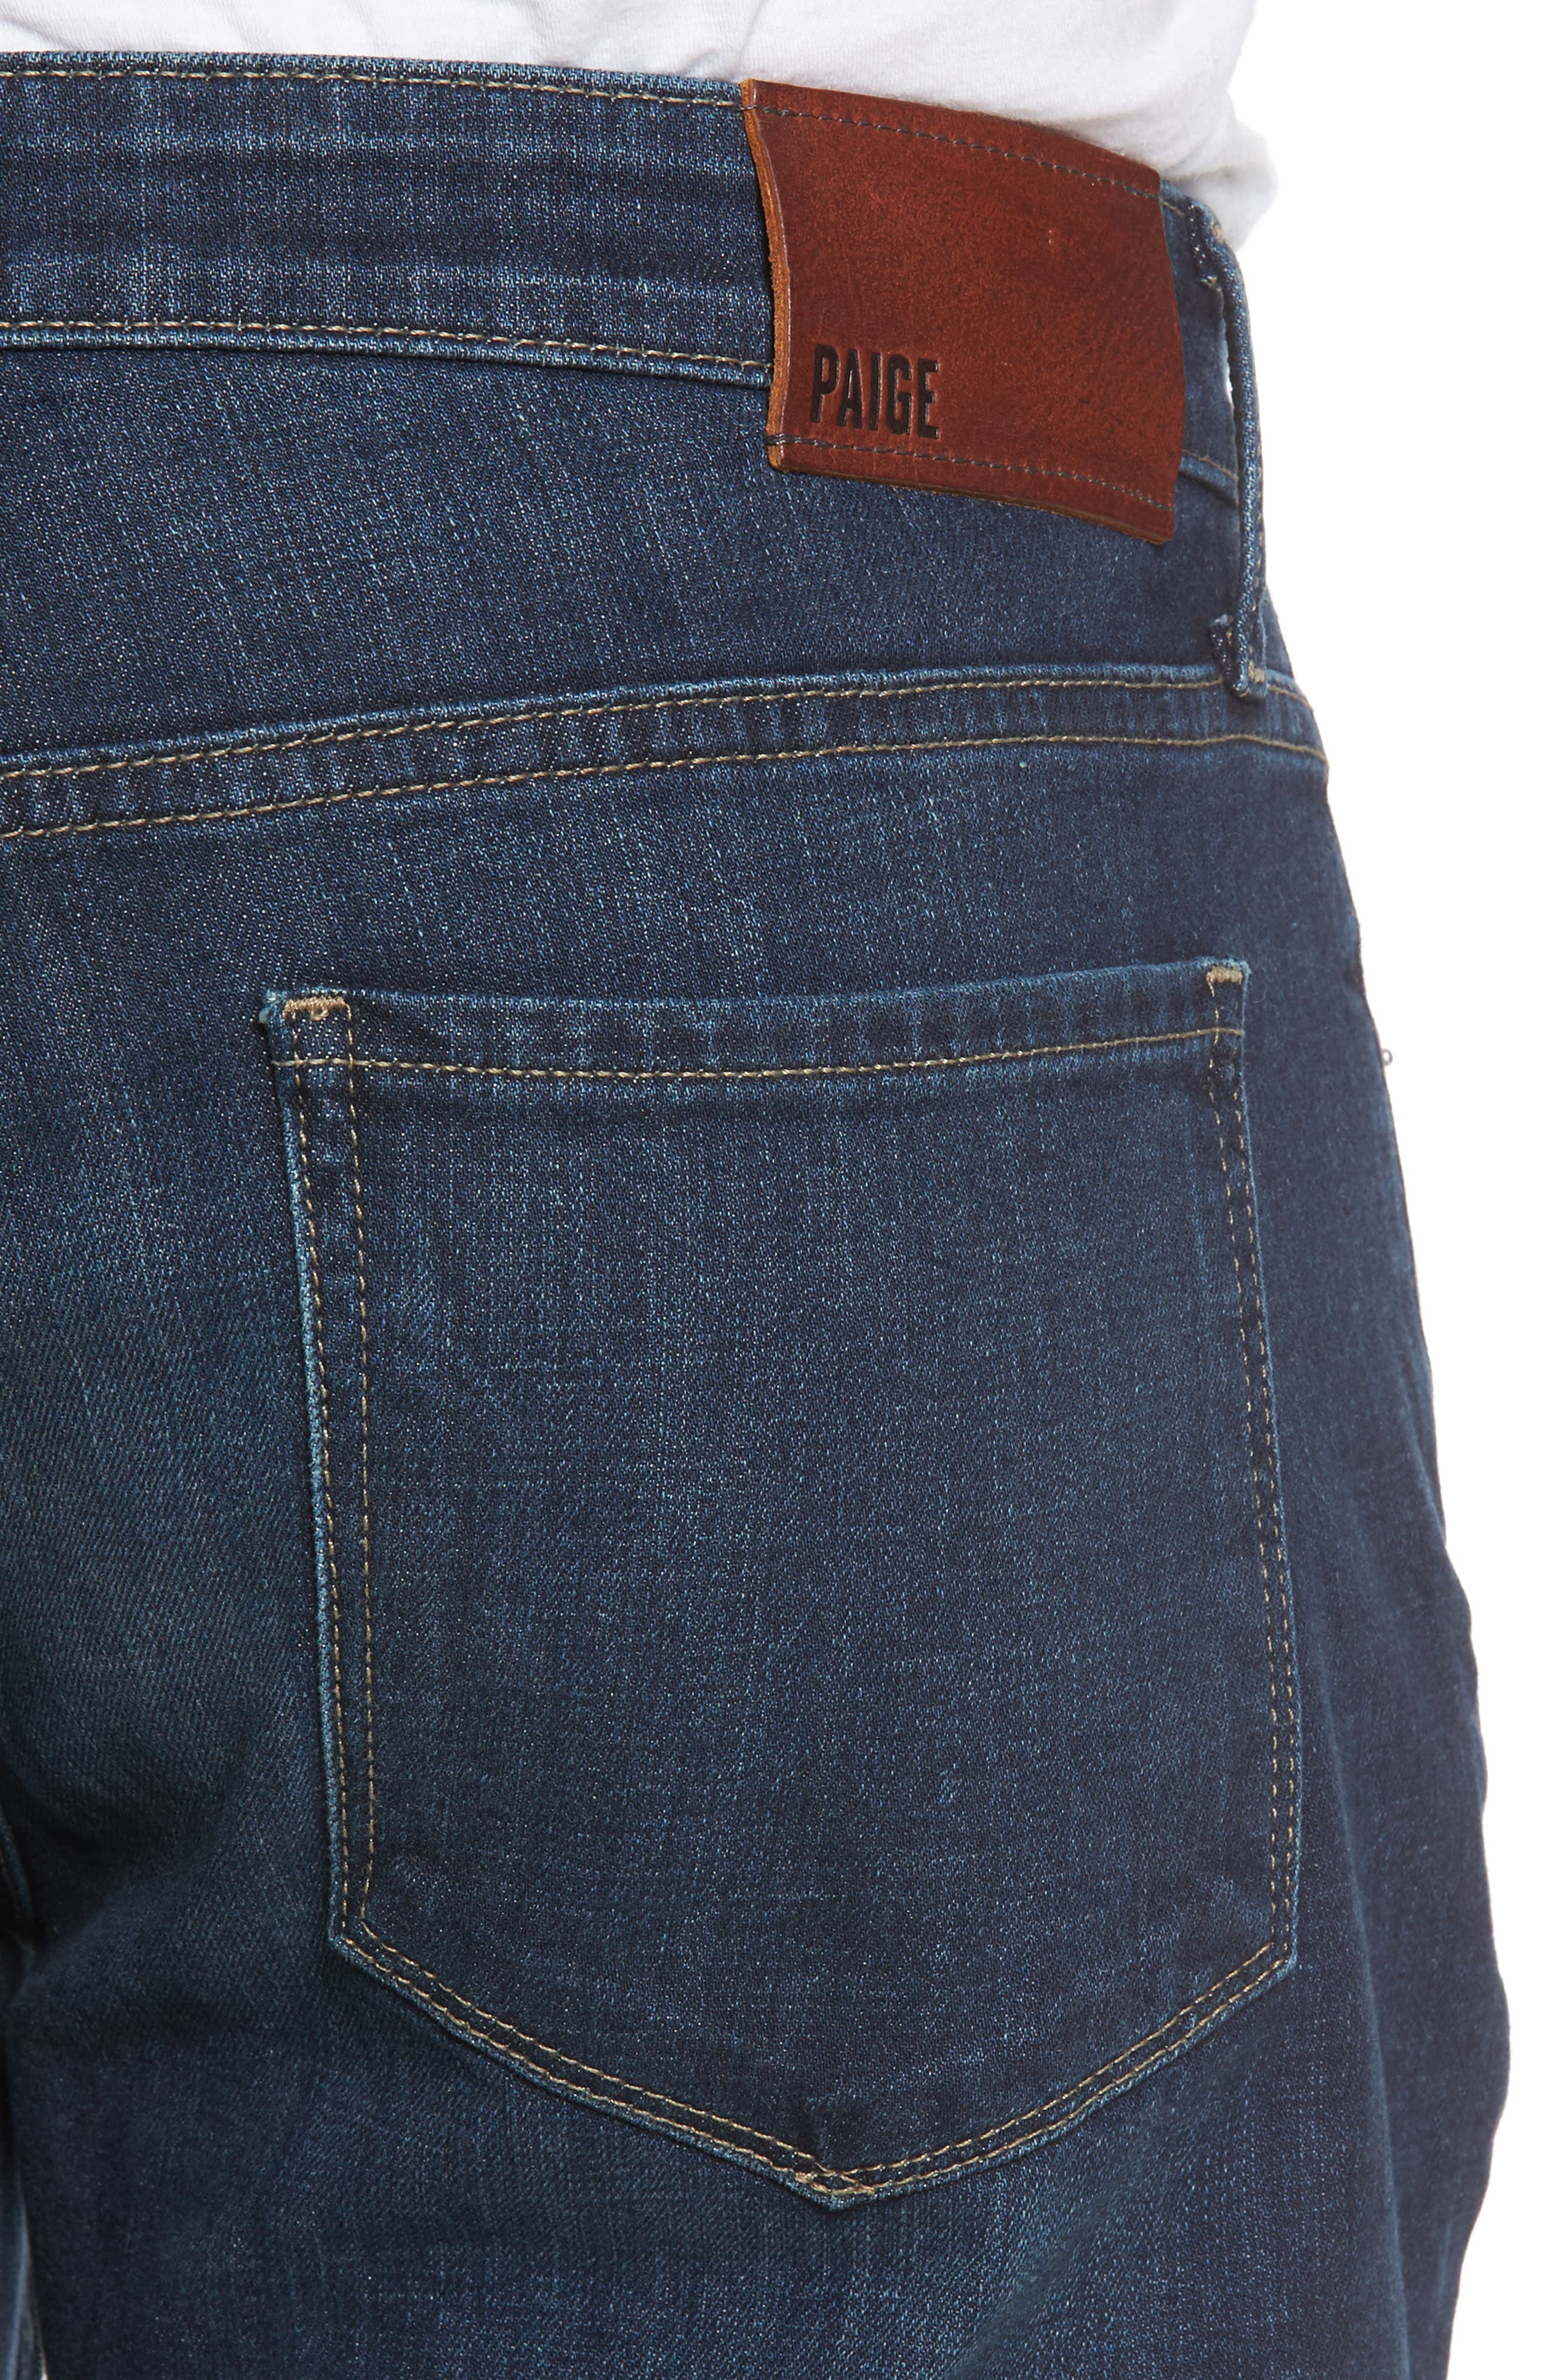 Federal Slim Straight Leg Jeans,                             Alternate thumbnail 4, color,                             Arnold